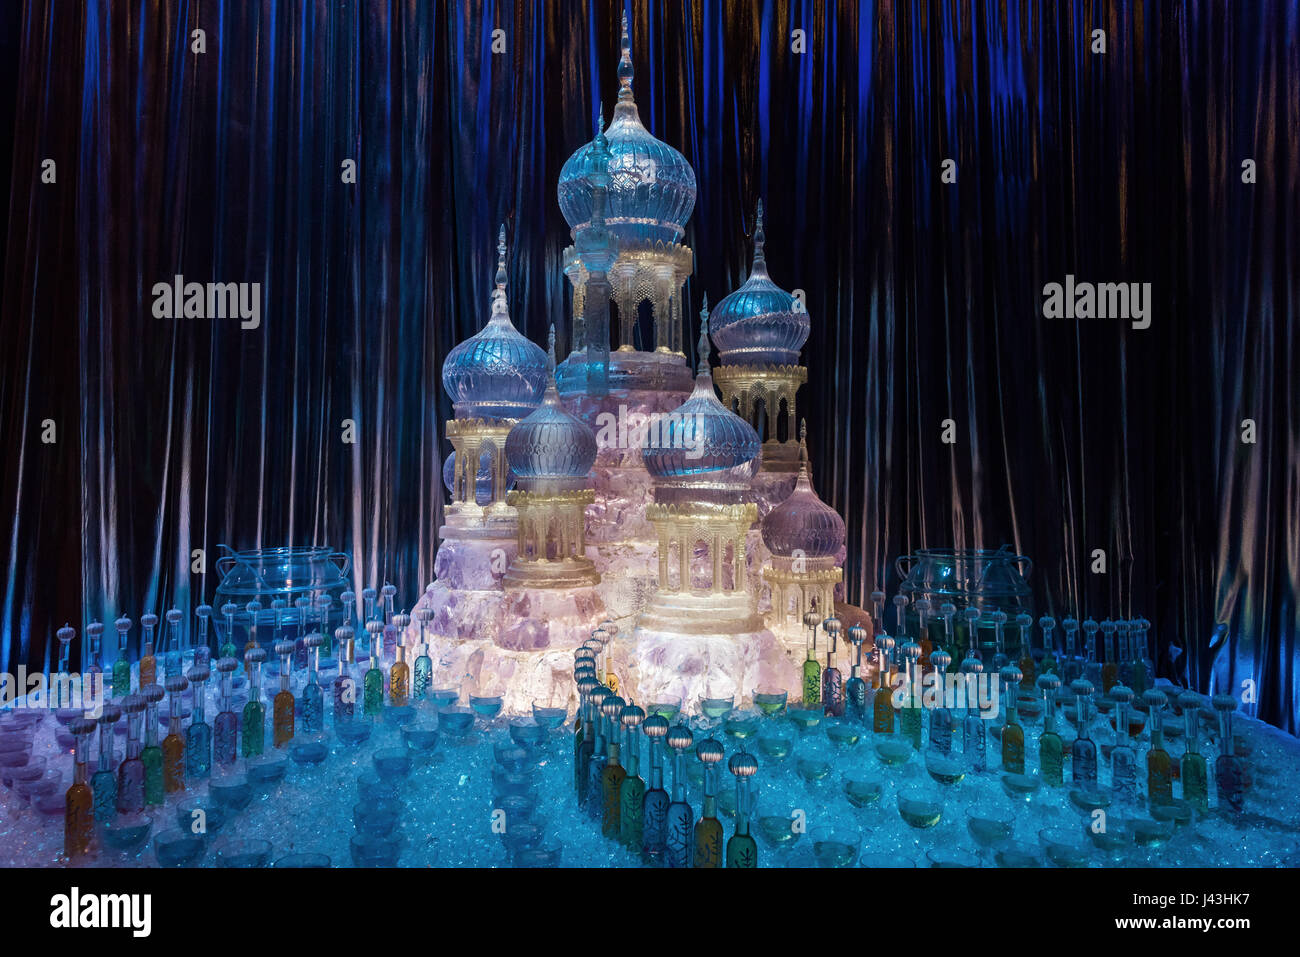 Ice Sculpture at Yule Ball, Making of Harry Potter, Warner Bros. Studio Tour, Leavesden, London - Stock Image